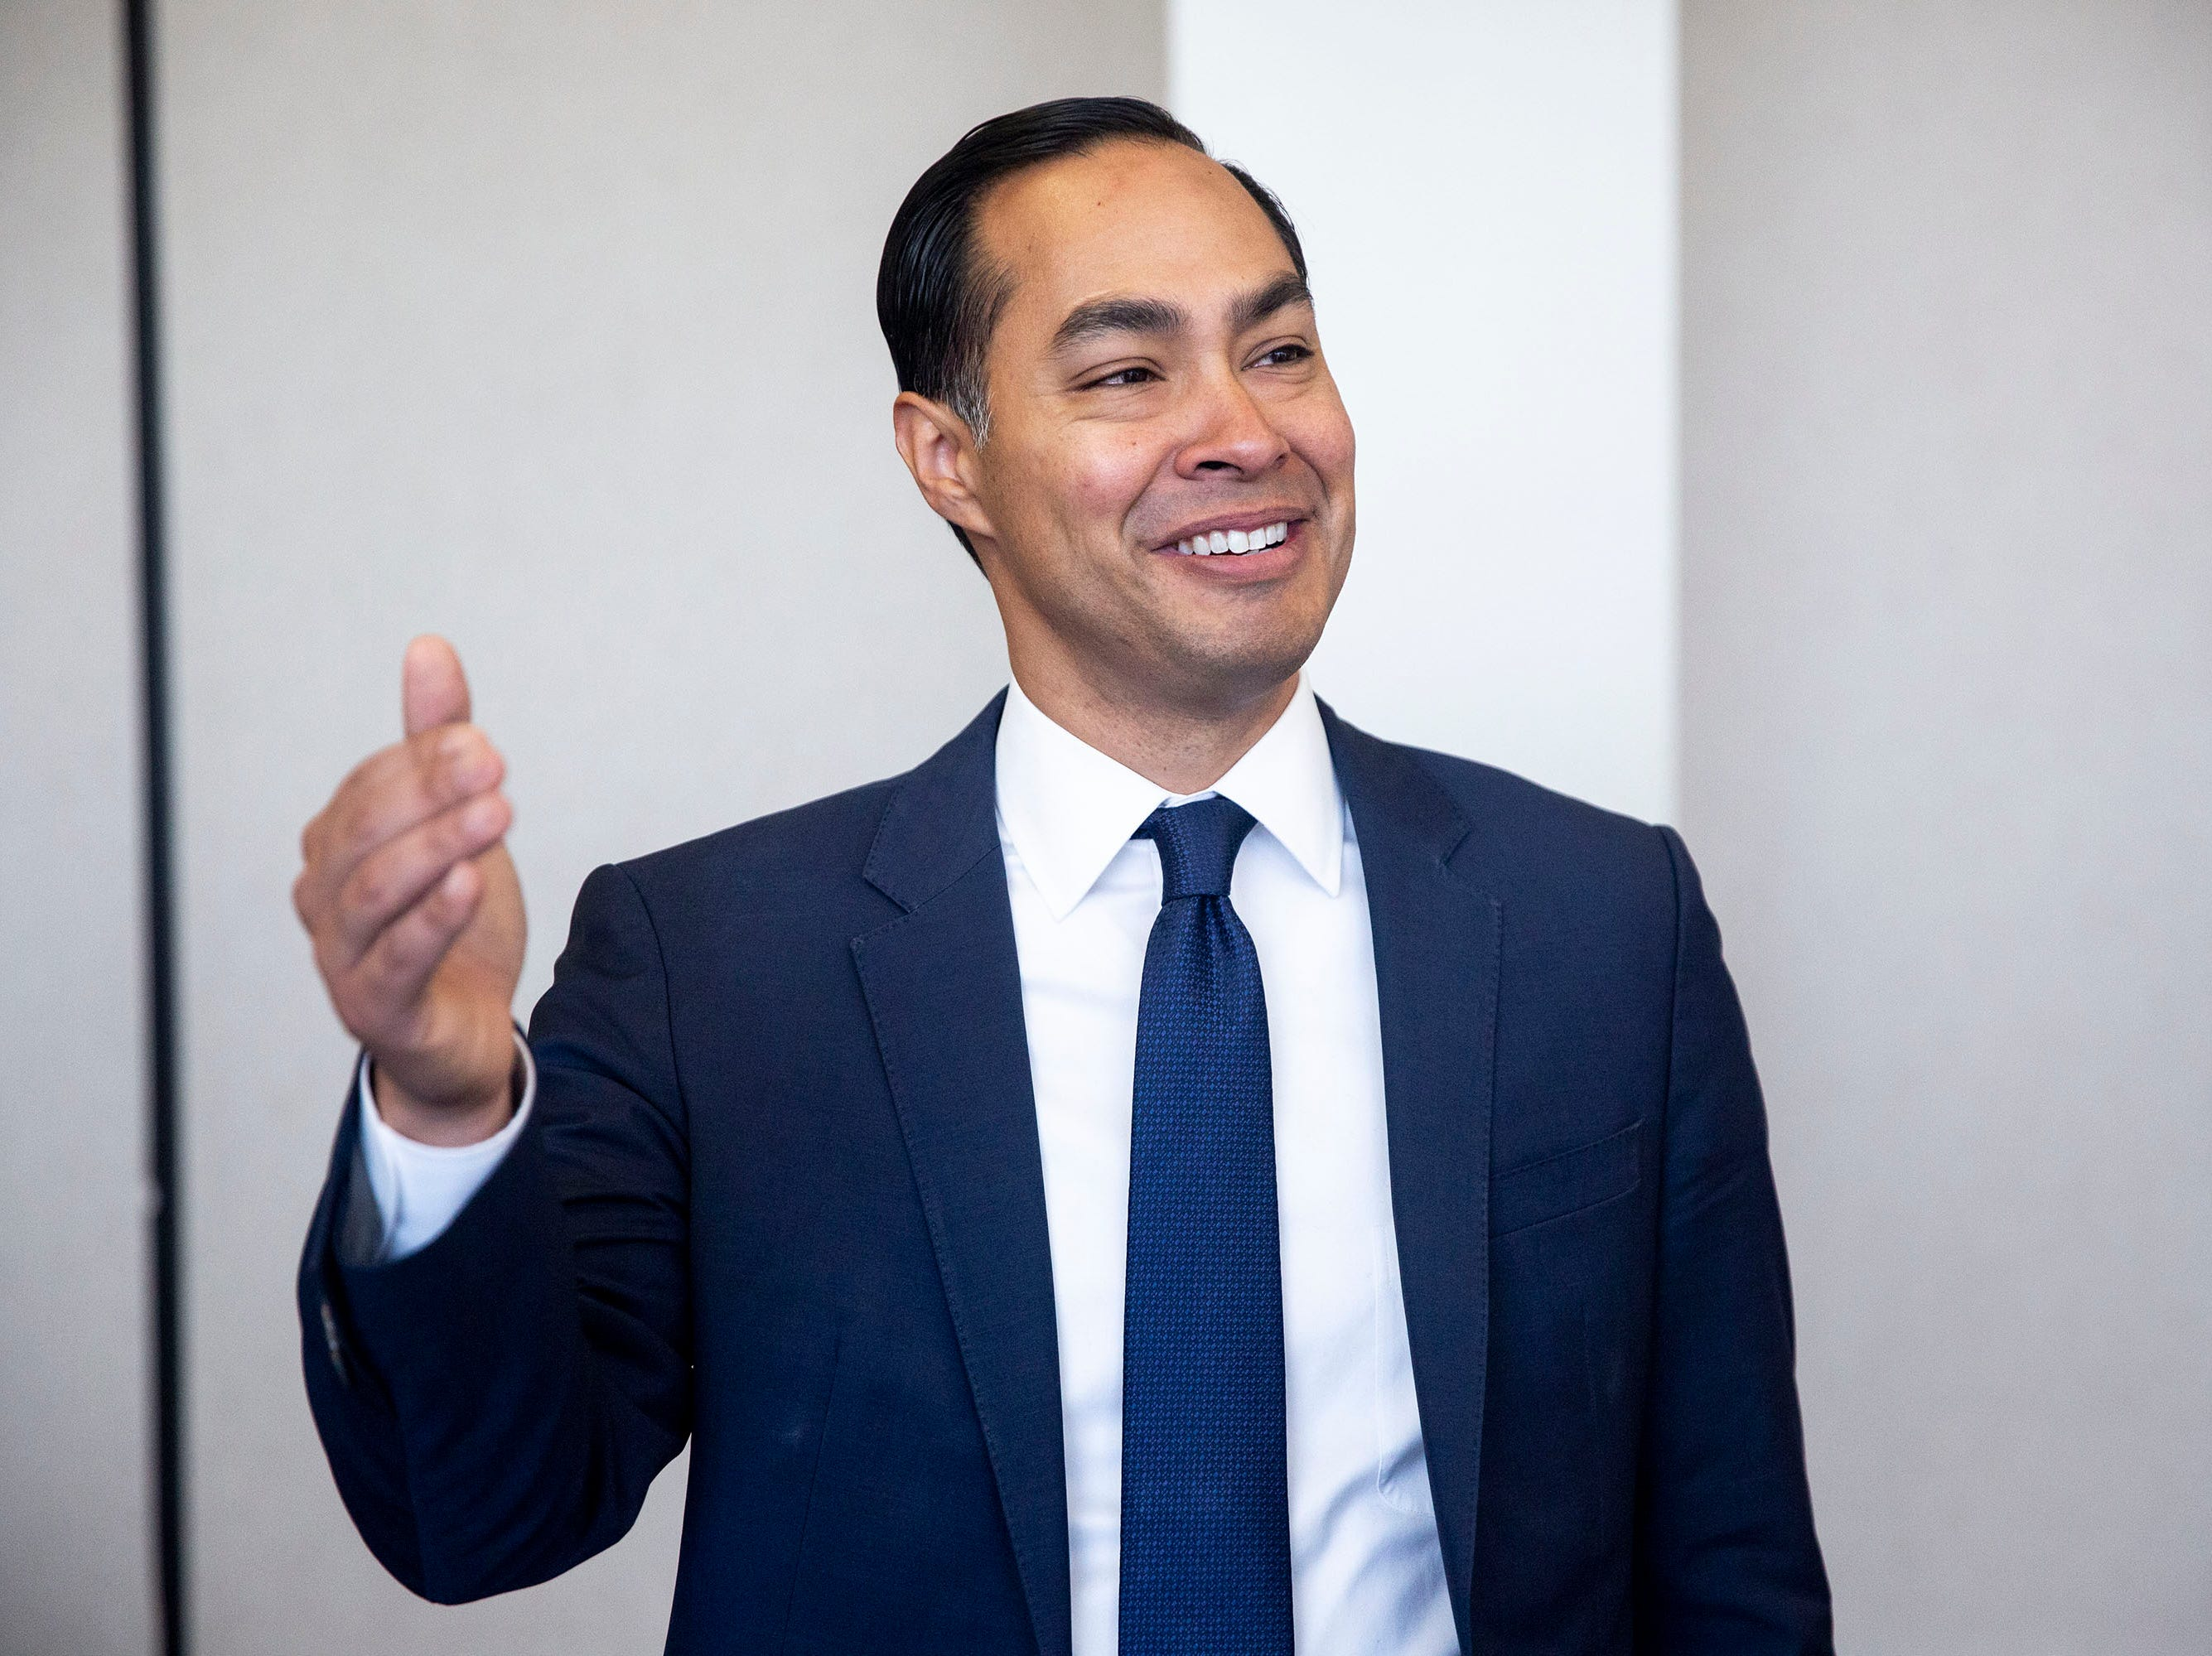 Presidential hopeful Julián Castro meets with administrators, faculty and students before touring Des Moines Public Schools' Central Campus and the Skilled Trades Academy on Monday, April 15, 2019, in Des Moines.